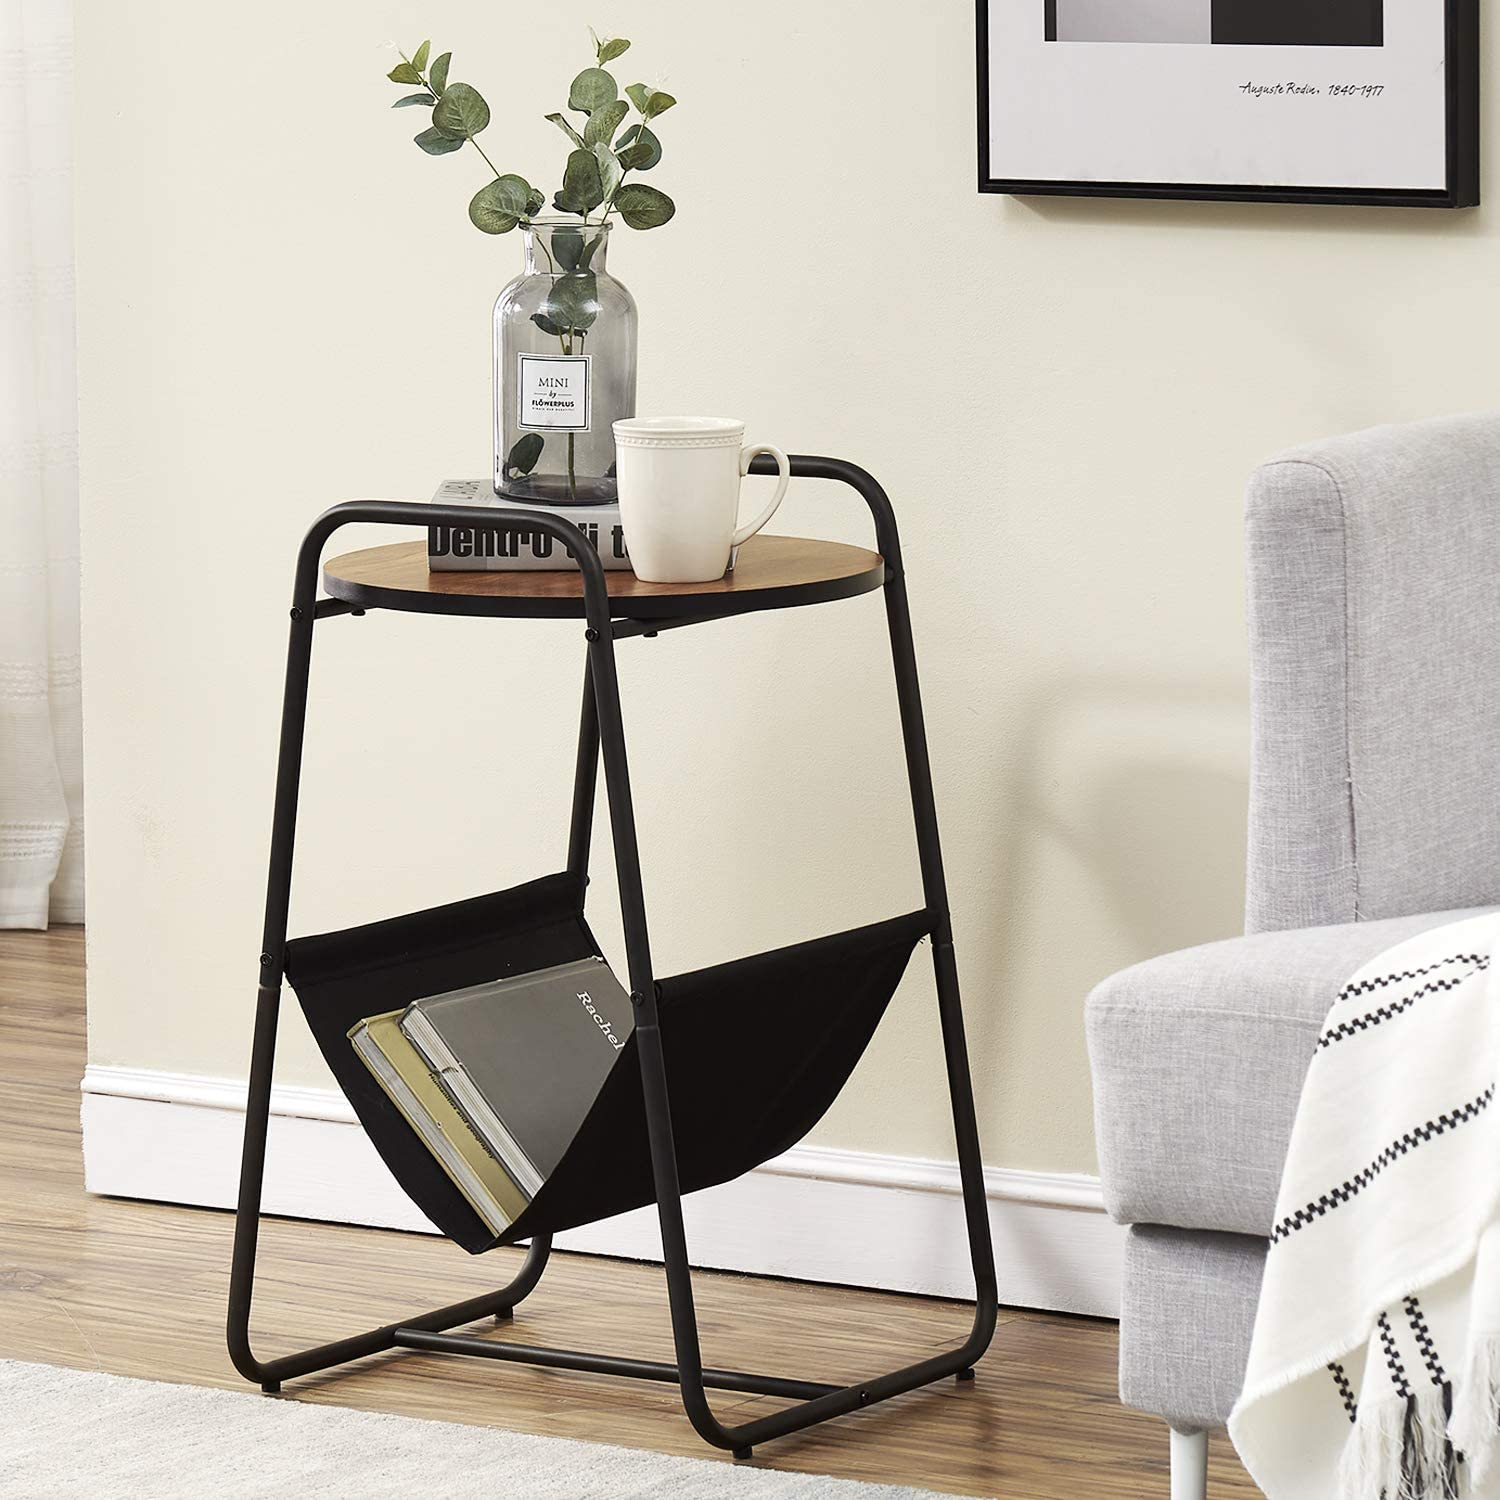 VECELO 2-Tier End/Side/Coffee/Table Nightstand for Small Space, Wood Look Accent Furniture with Metal Frame, Brown